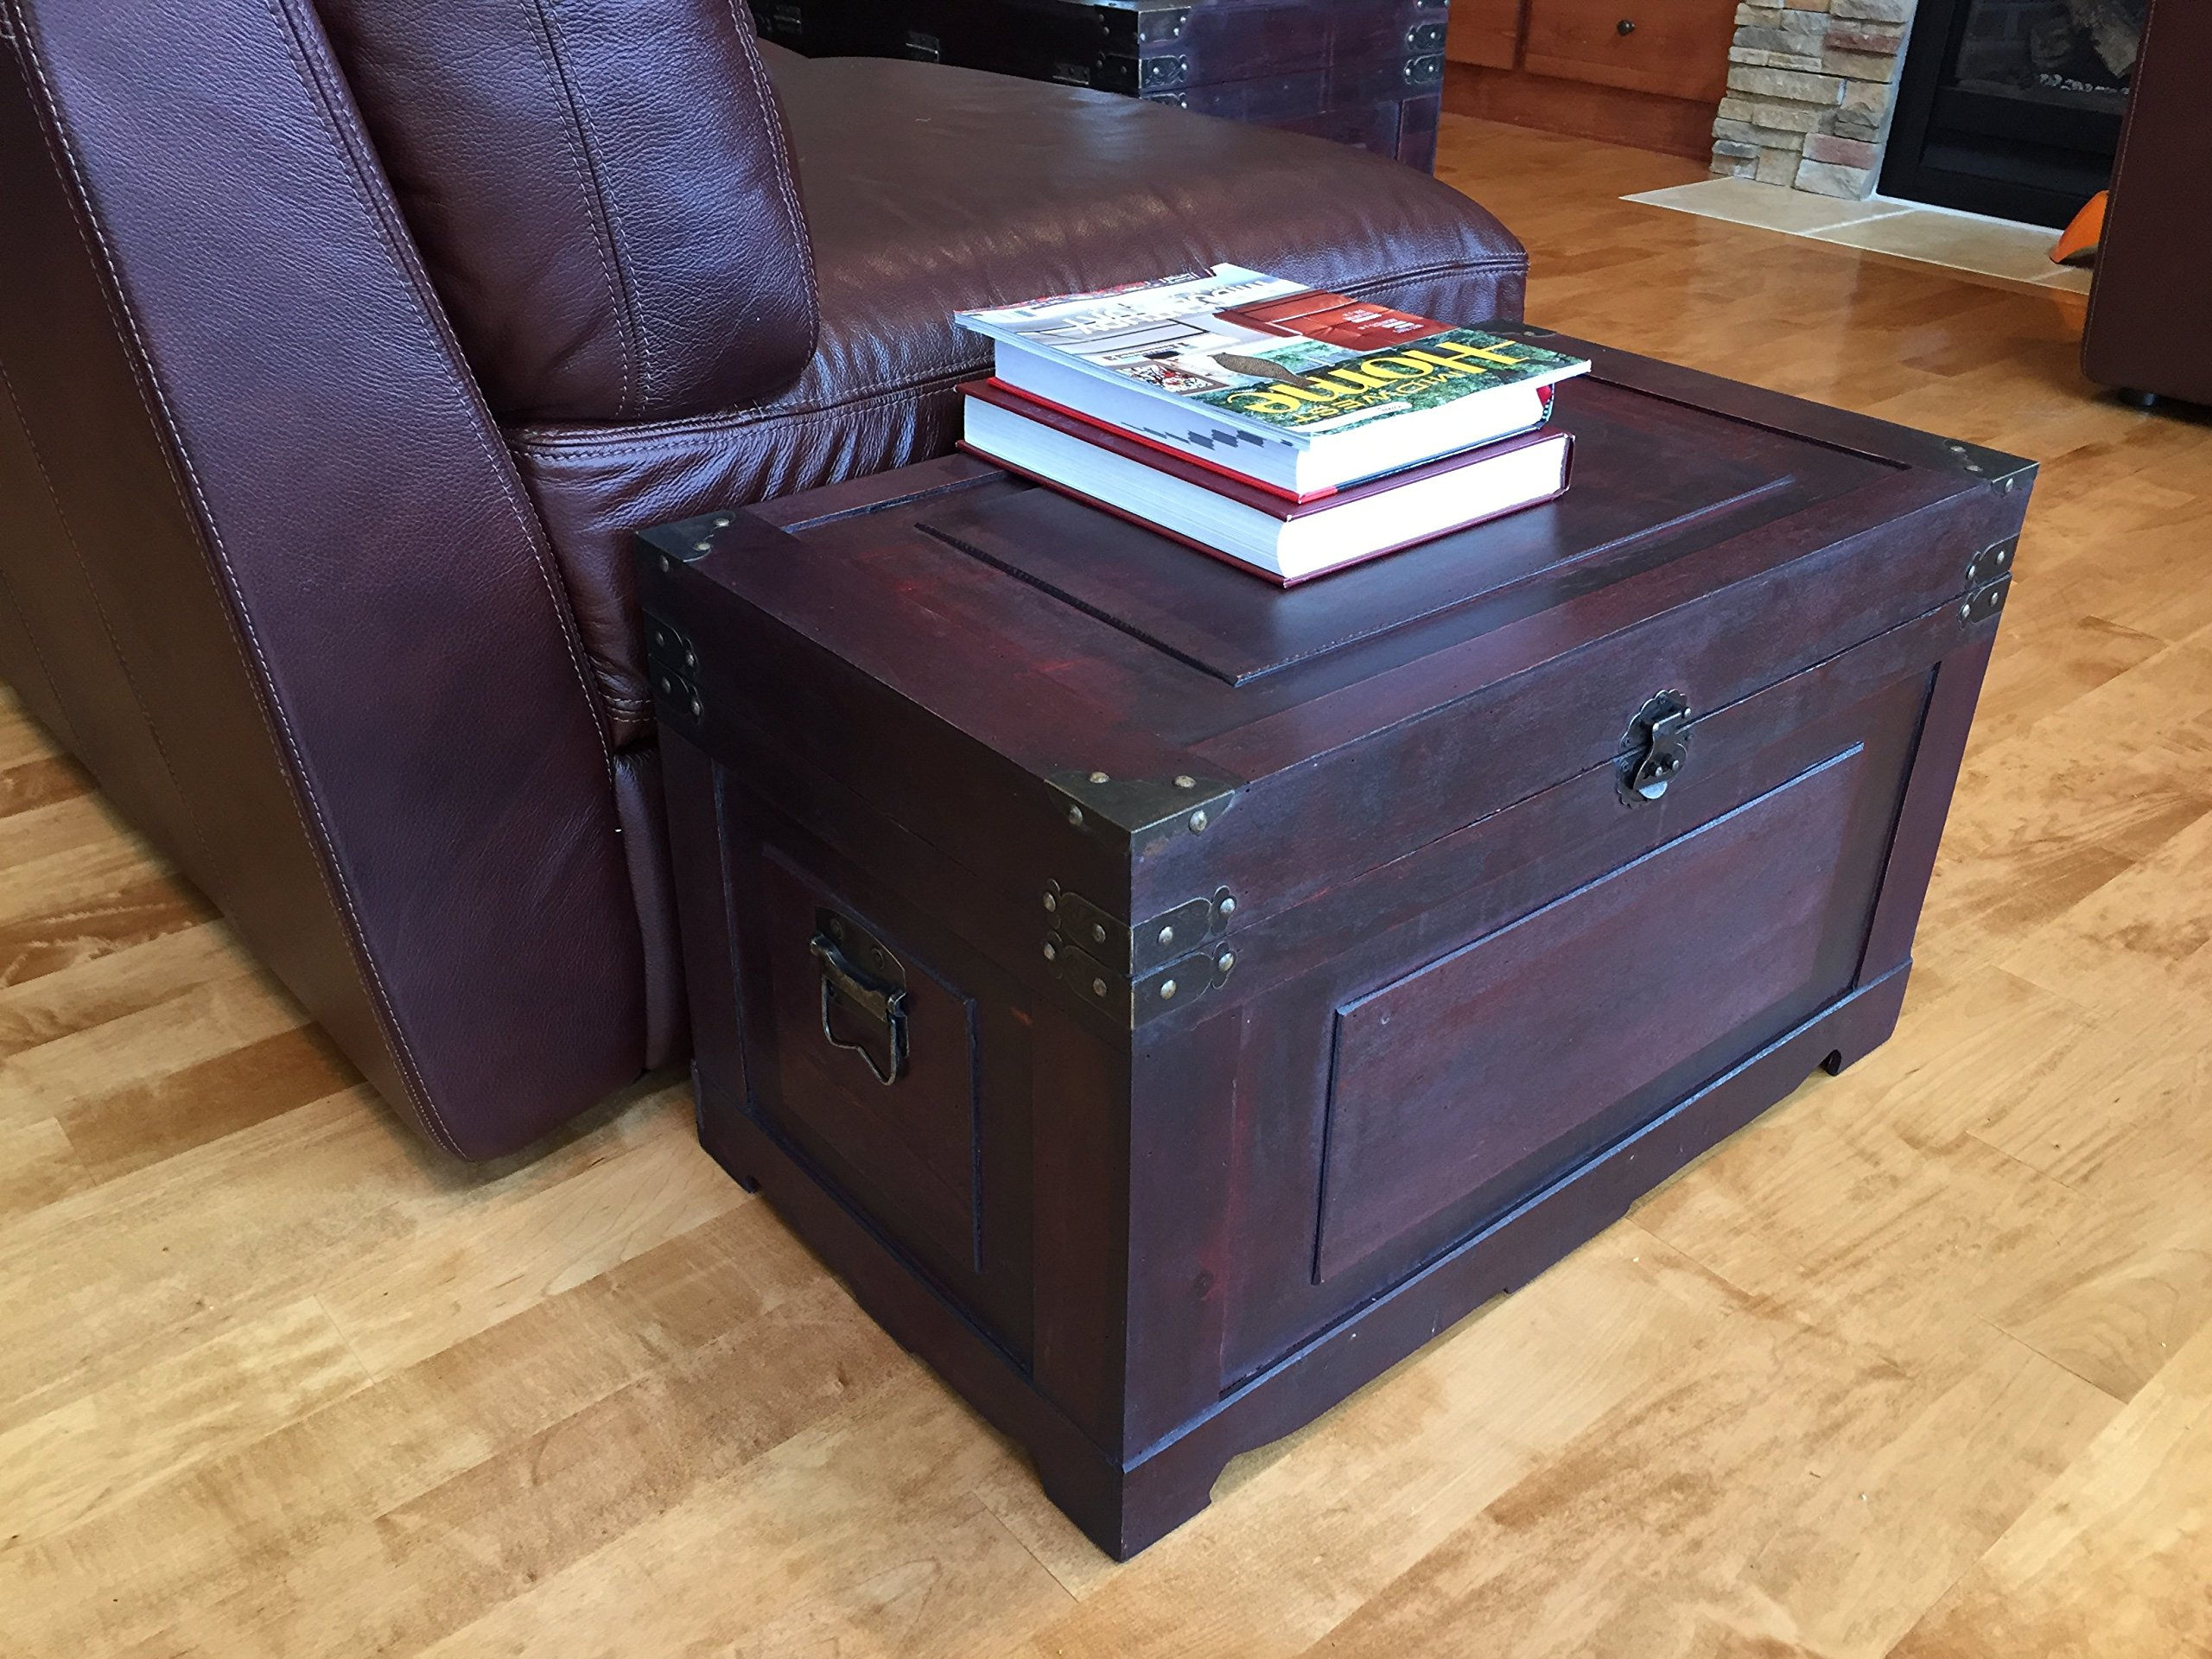 Styled Shopping Newport Medium Wood Storage Trunk Wooden Treasure Chest - Red